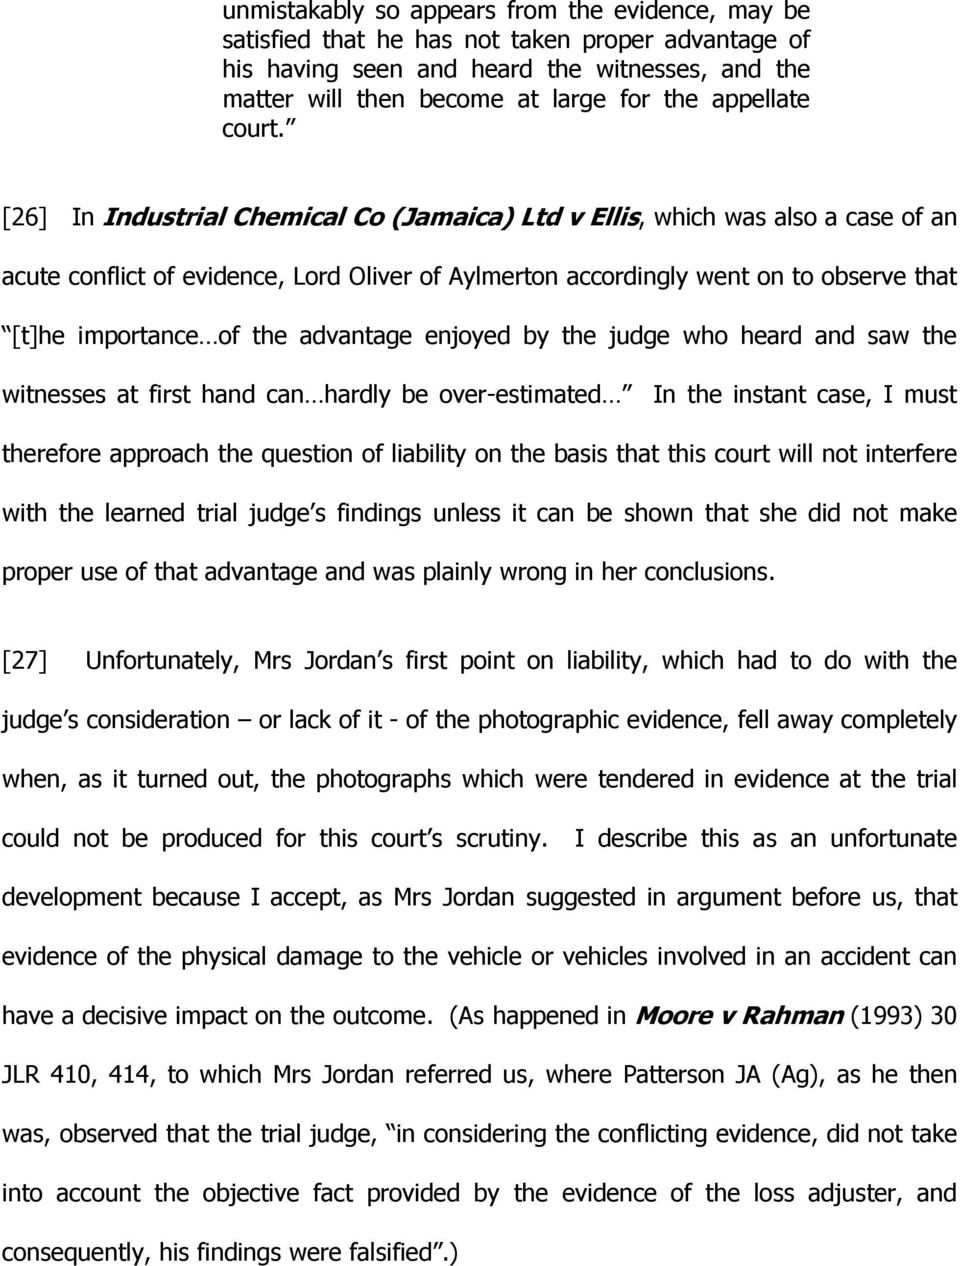 [26] In Industrial Chemical Co (Jamaica) Ltd v Ellis, which was also a case of an acute conflict of evidence, Lord Oliver of Aylmerton accordingly went on to observe that [t]he importance of the